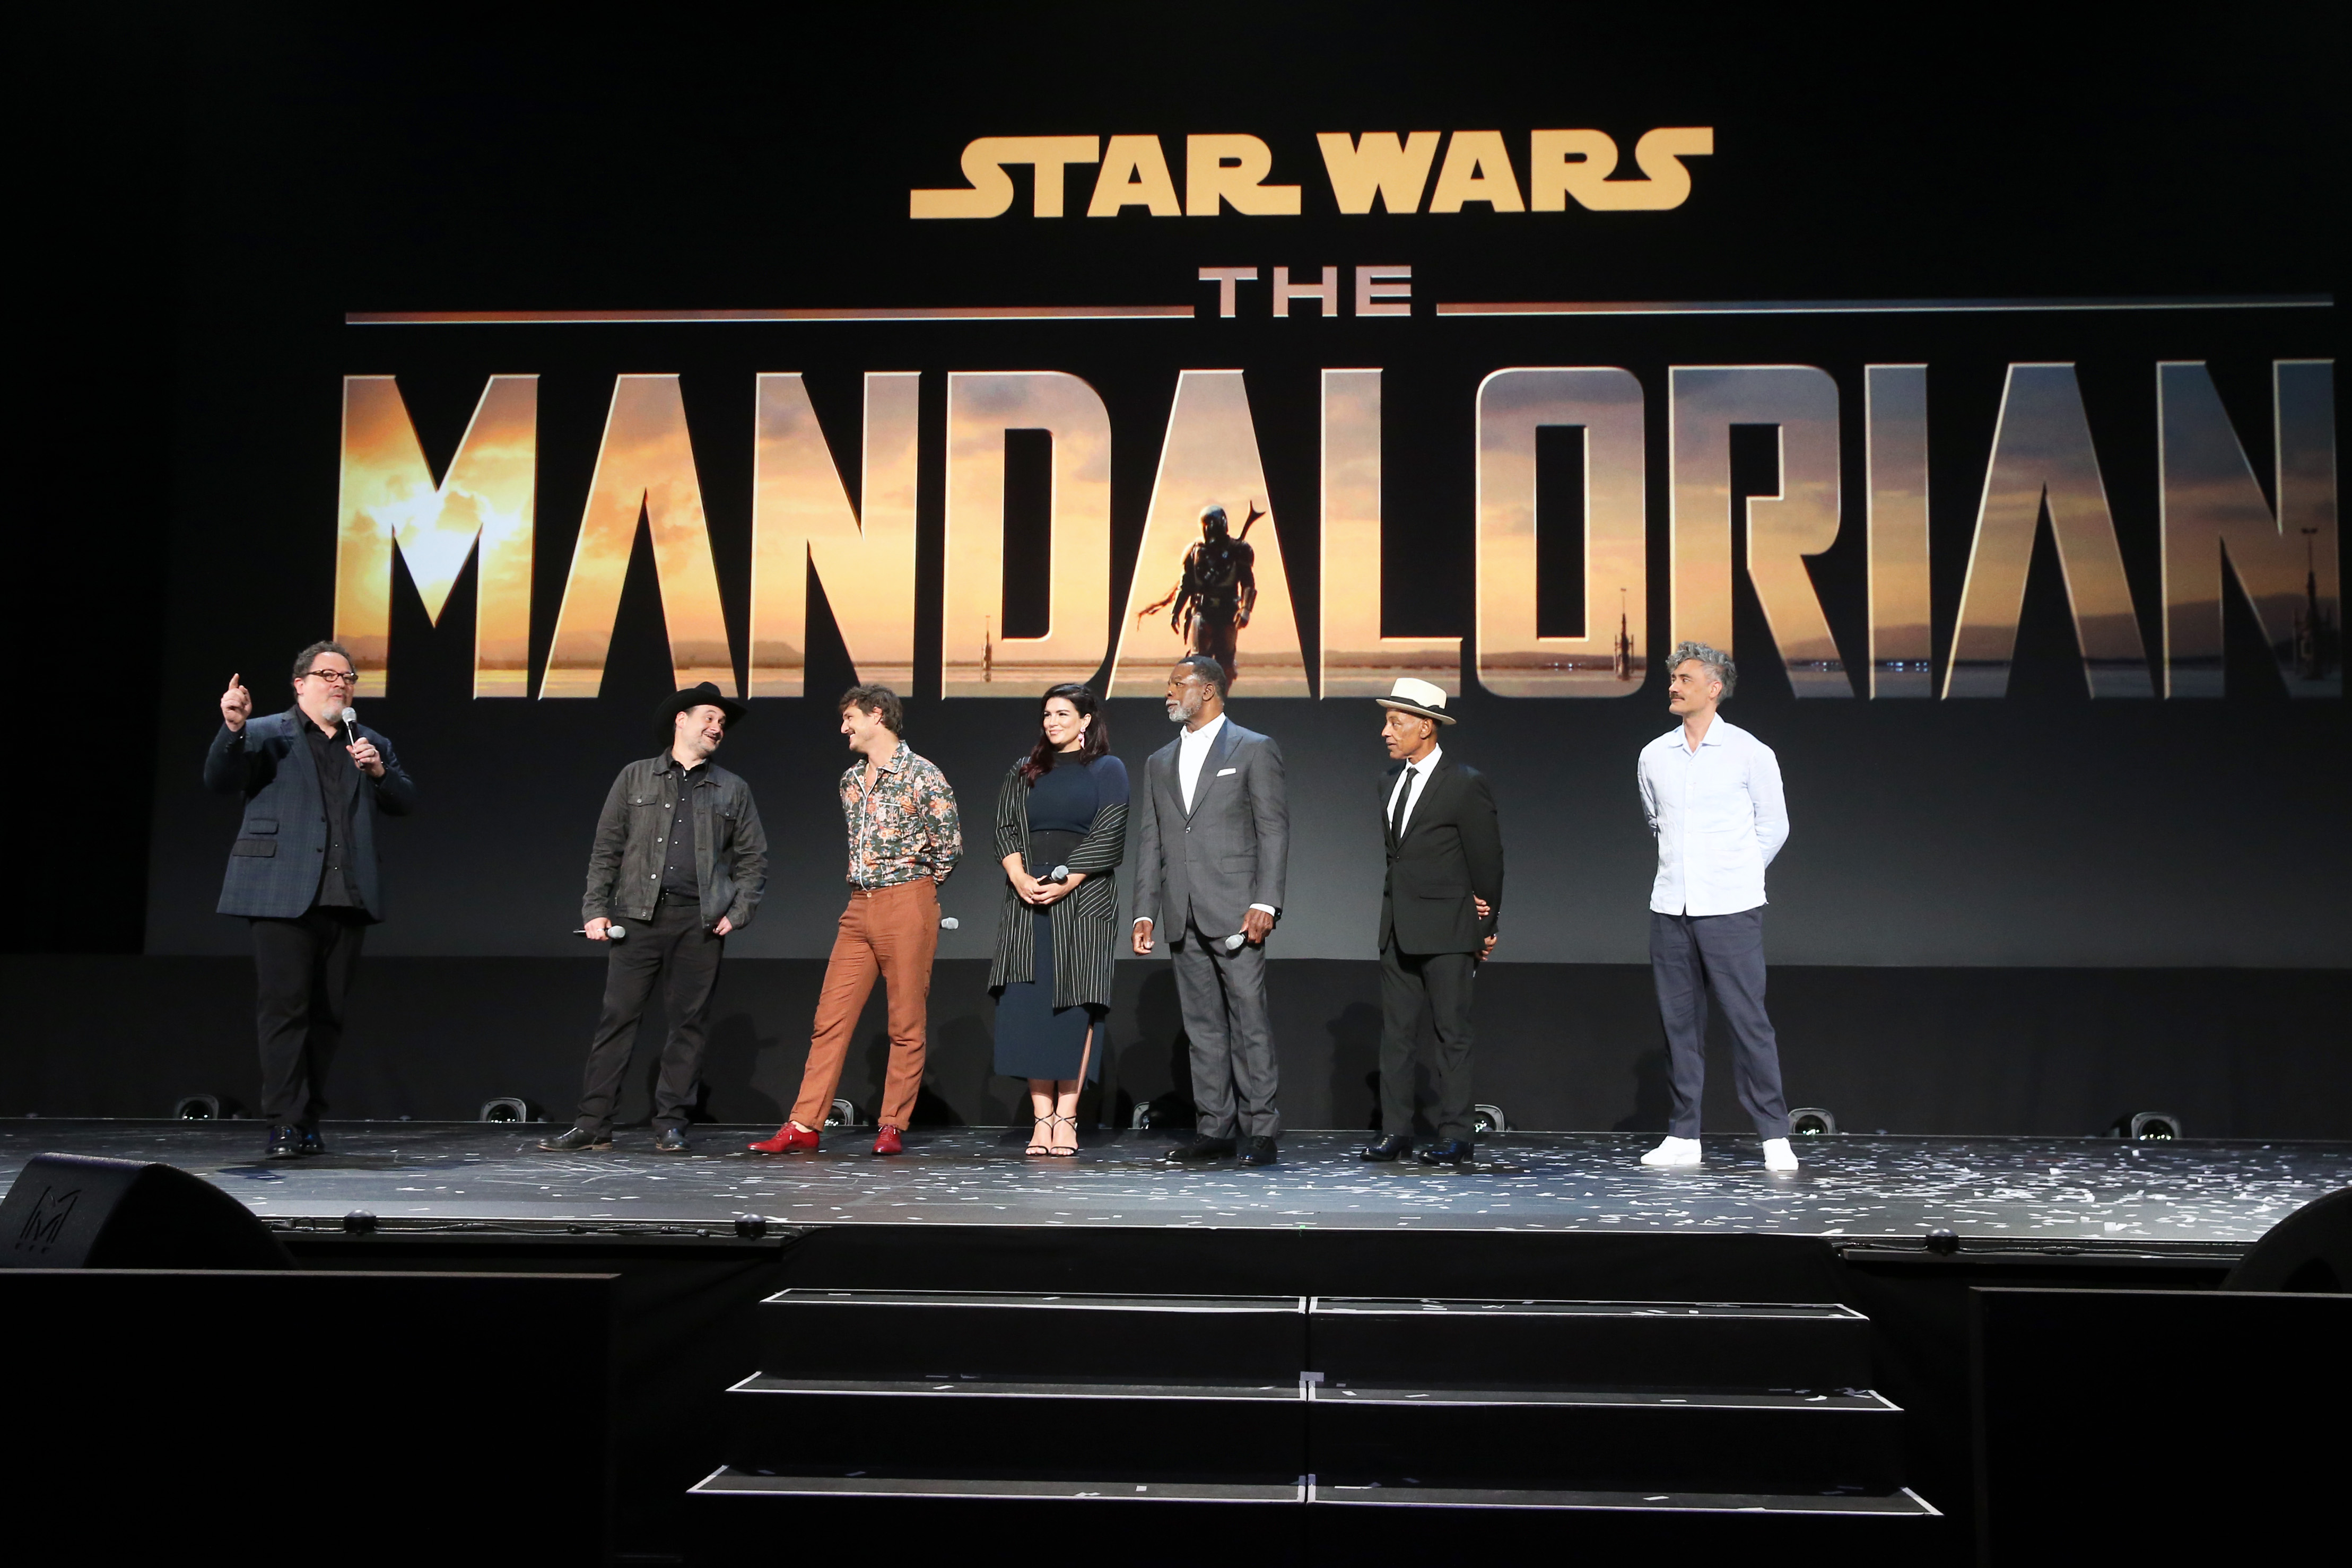 ANAHEIM, CALIFORNIA - AUGUST 23: (L-R) Executive producer/writers Jon Favreau, Dave Filoni, Pedro Pascal, Gina Carano, Carl Weathers, Giancarlo Esposito and Taika Waititi of 'The Mandalorian' took part today in the Disney+ Showcase at Disney's D23 EXPO 2019 in Anaheim, Calif.  'The Mandalorian' will stream exclusively on Disney+, which launches November 12. (Photo by Jesse Grant/Getty Images for Disney)